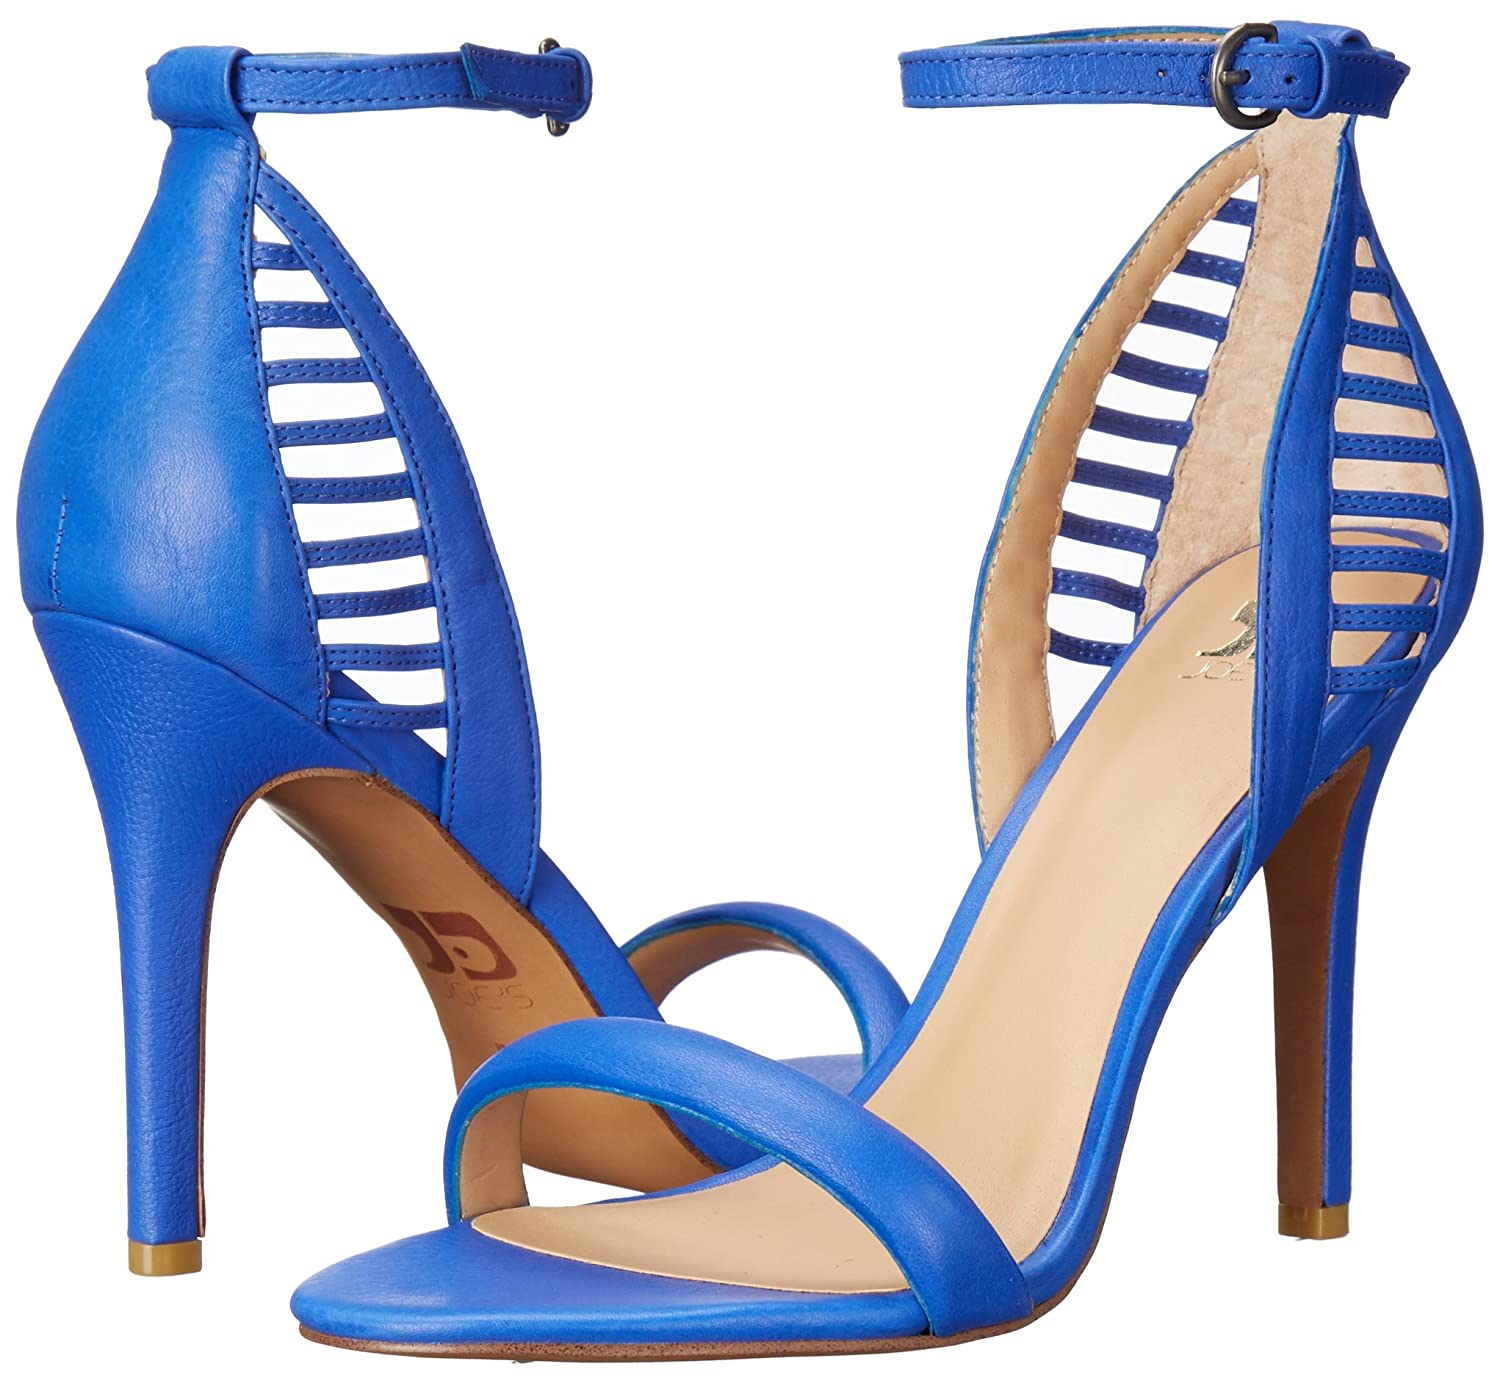 77c4897ce65 Joe s Jeans Women s Virgil Royal Blue Sandal  Buy Online at Low Prices in  India - Amazon.in